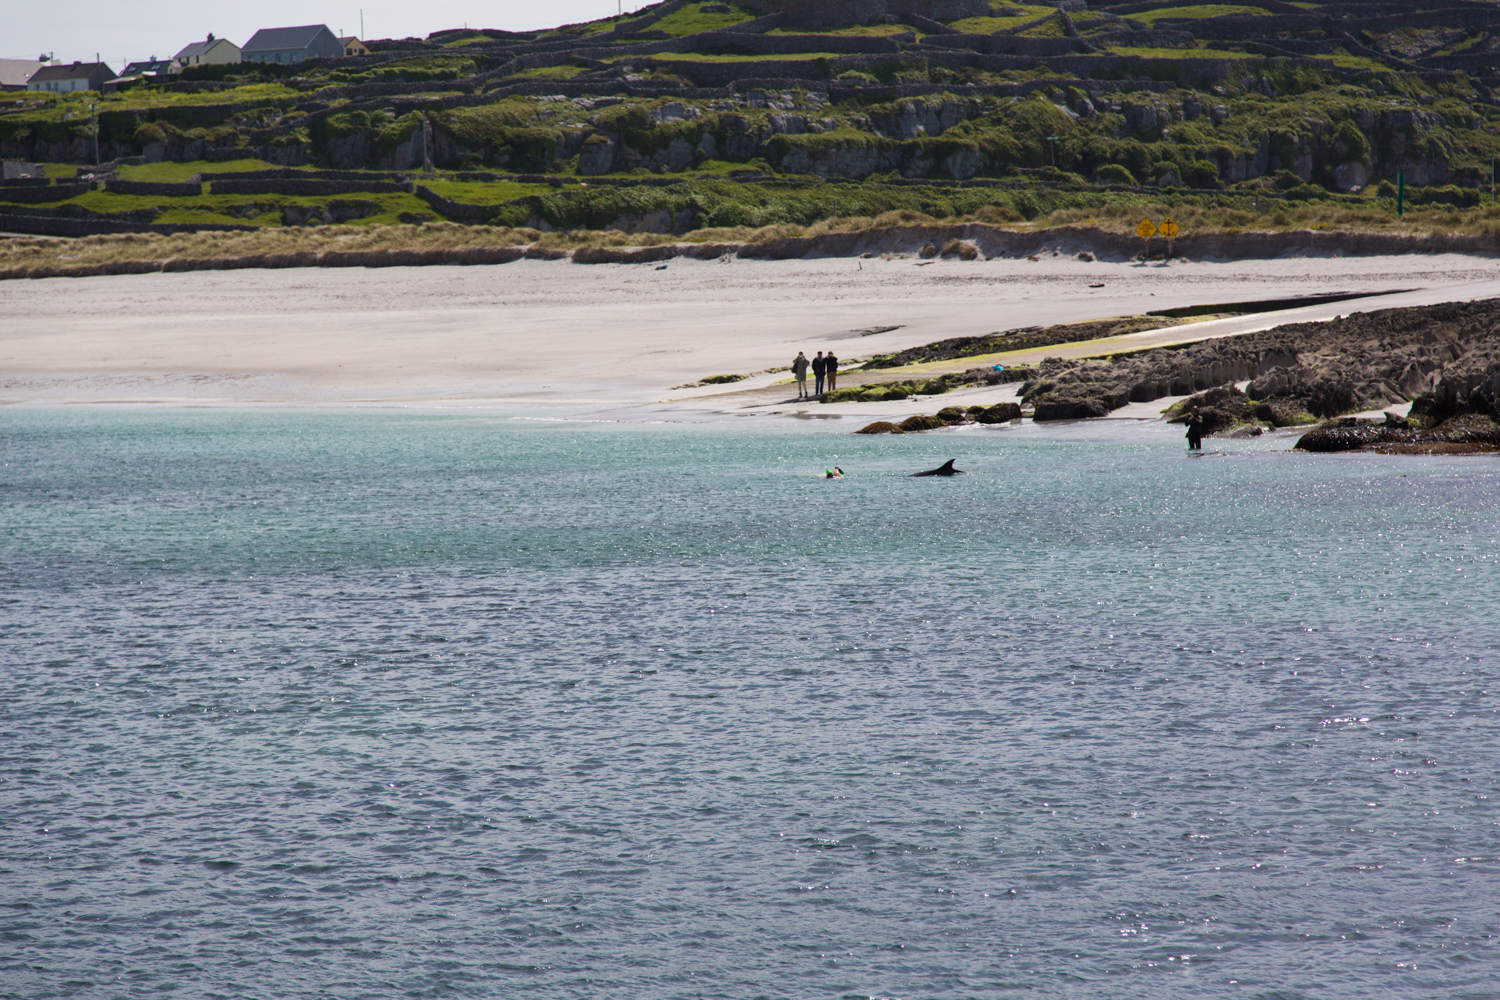 The local beach, the swimmer and the dolpin on the way back to the mainland.